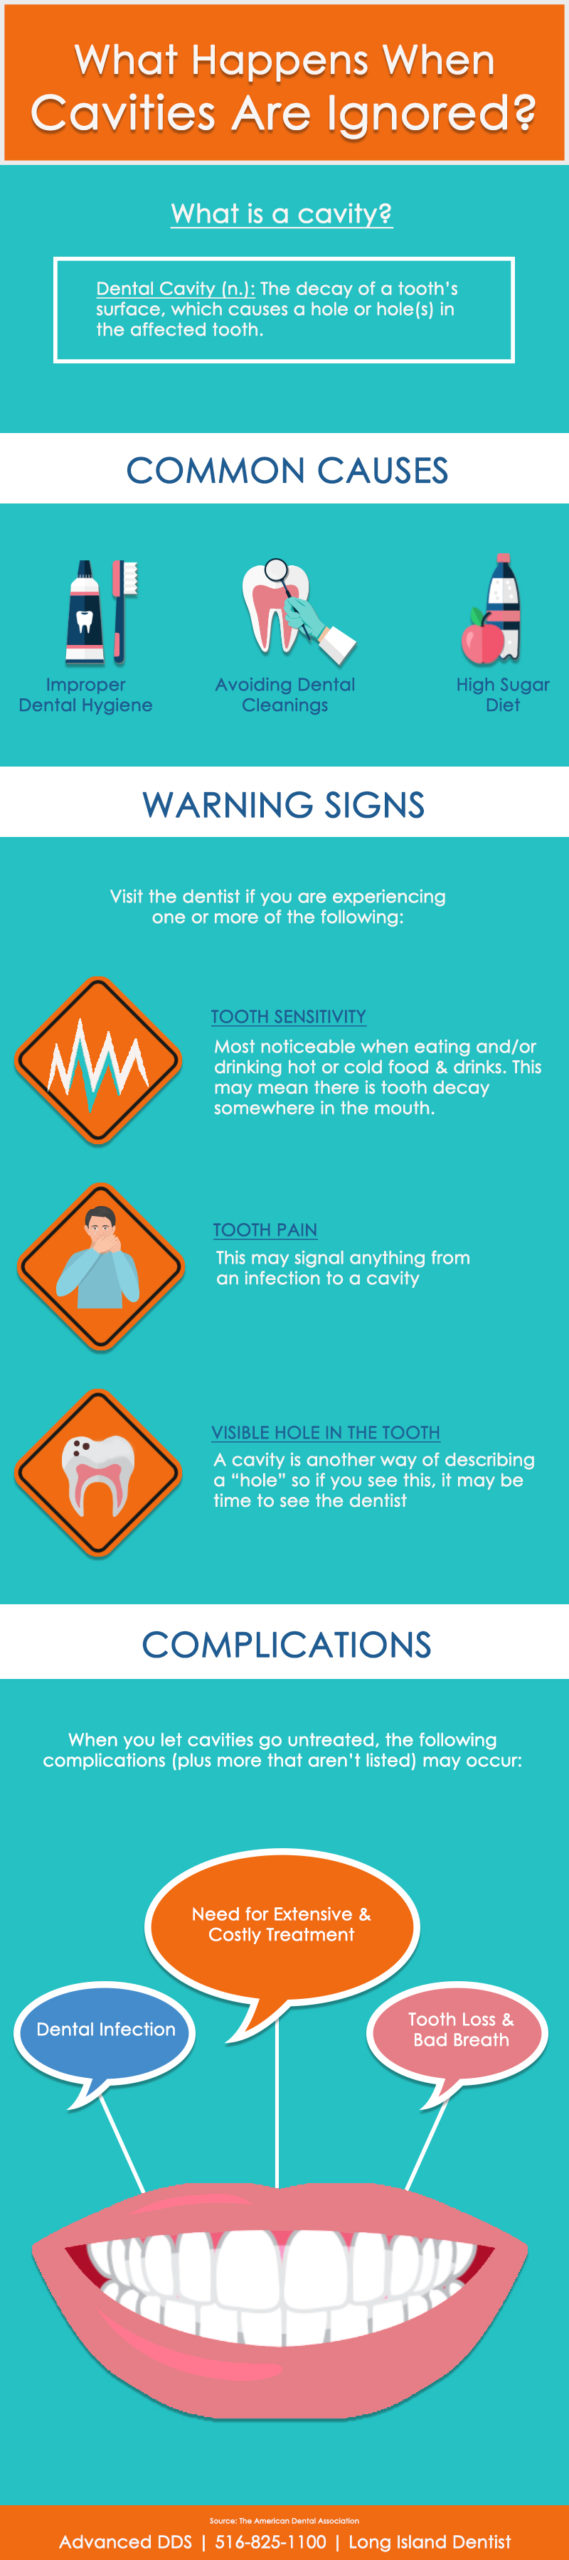 Infographic describing what happens when you let dental cavities go untreated